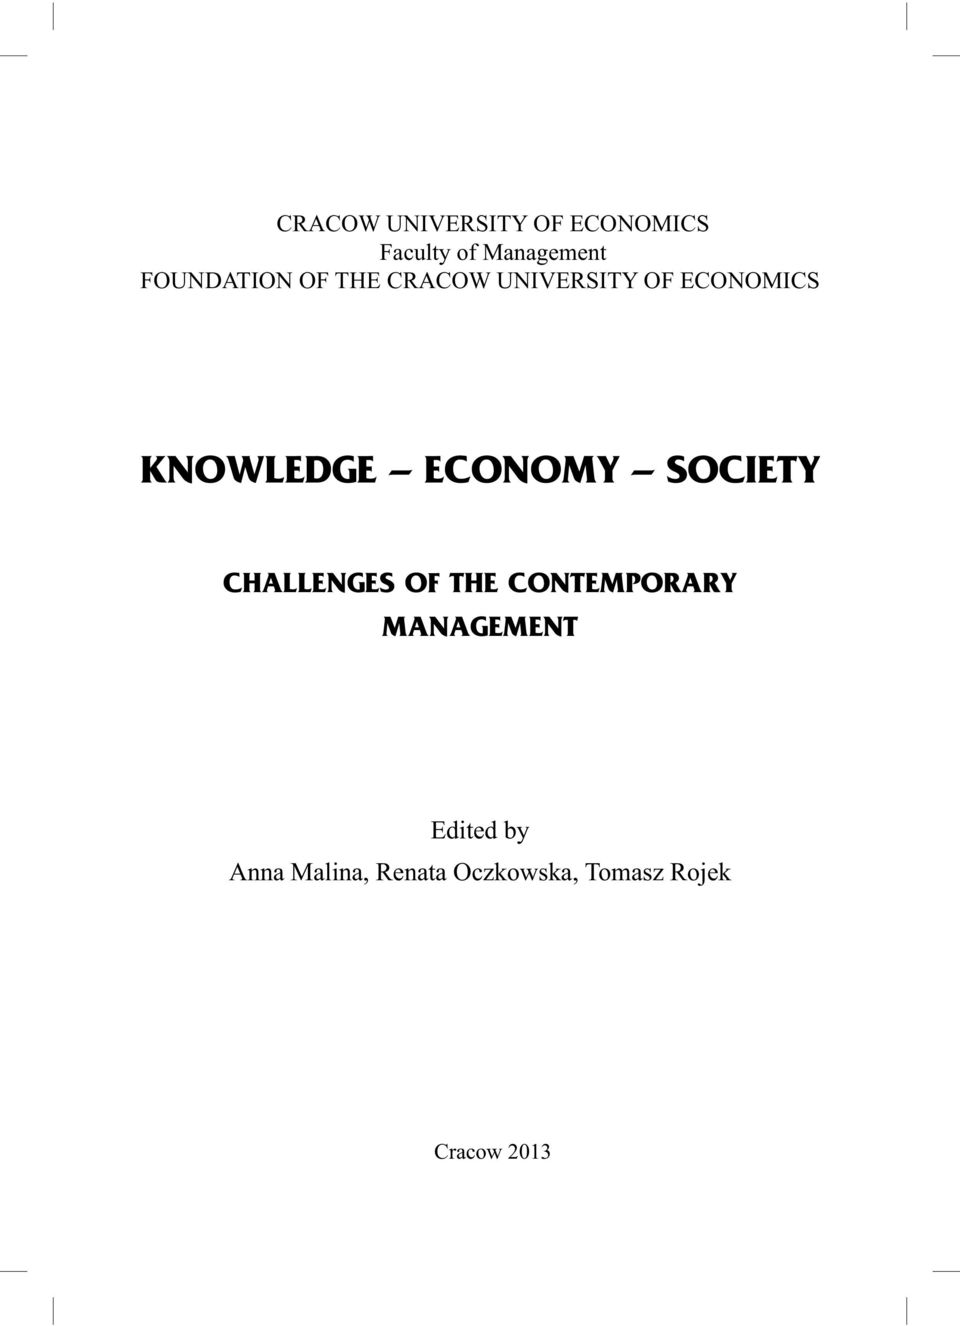 ECONOMY SOCIETY CHALLENGES OF THE CONTEMPORARY MANAGEMENT